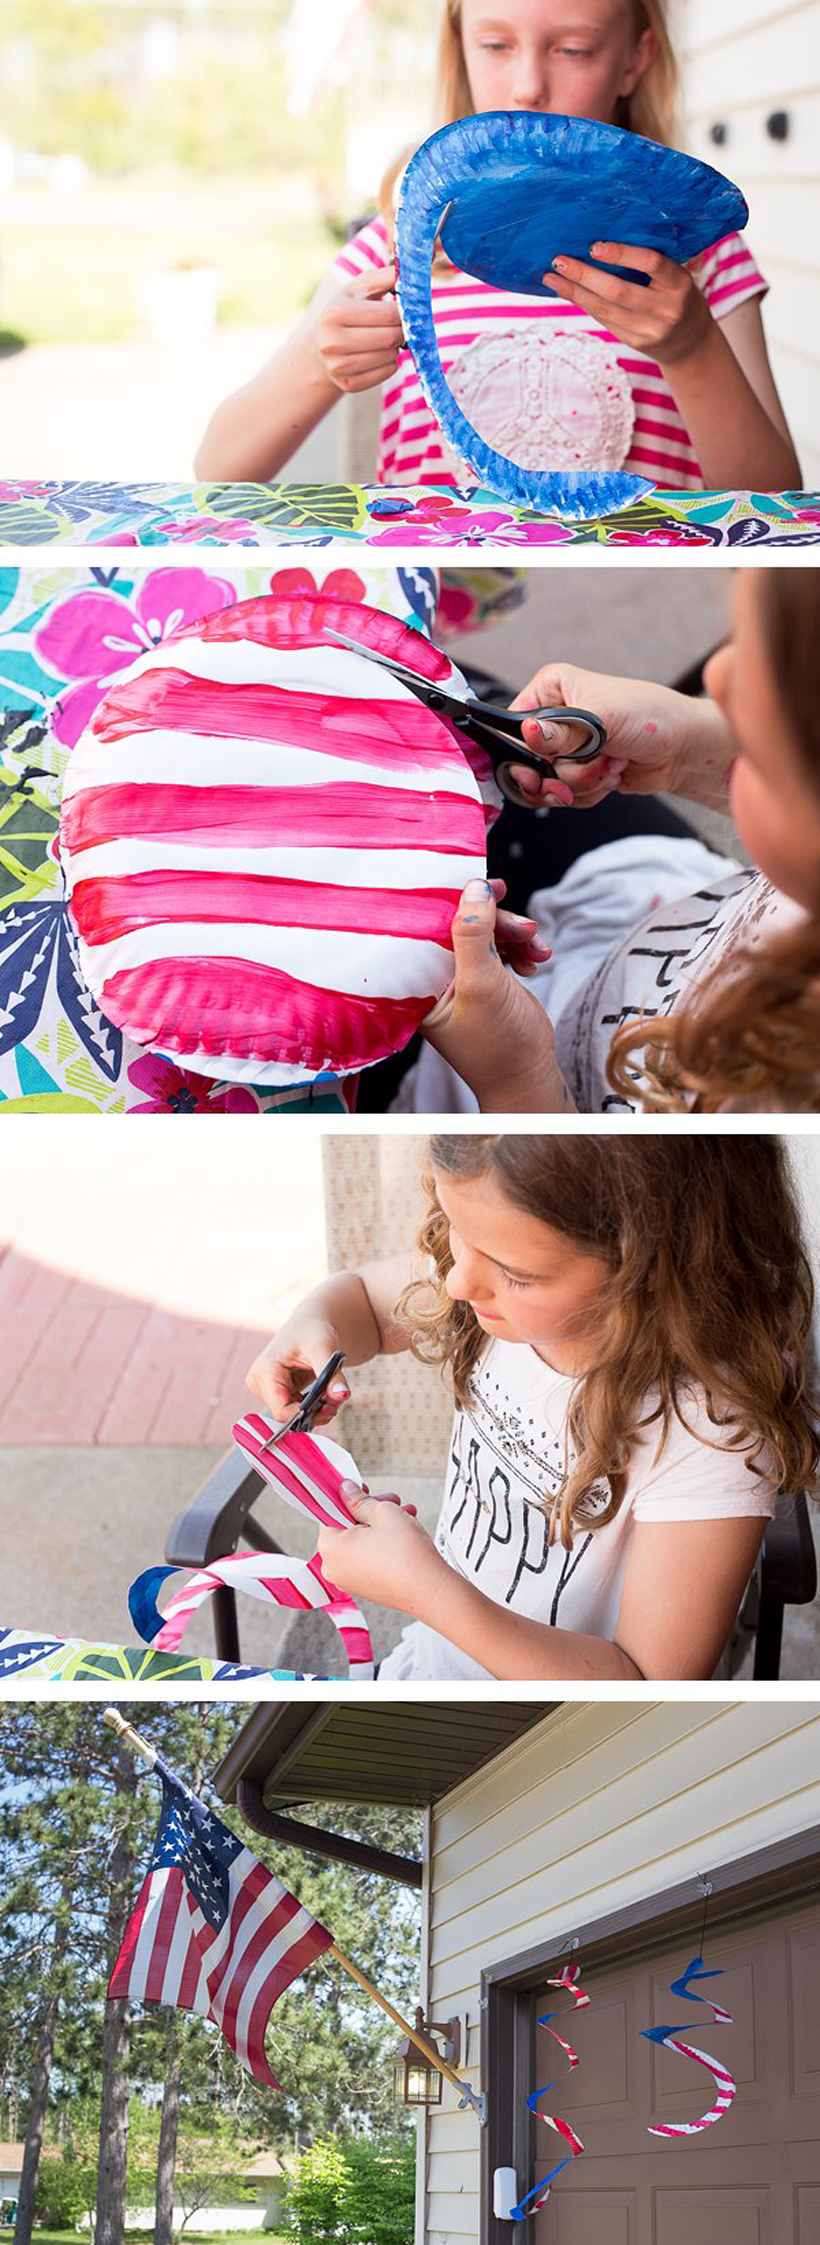 Patriotic Craft for Kids: Super-Simple American Flag Wind Spinners - Celebrate Independence Day with this easy children's art project *Love these! Perfect for Labor Day weekend too.